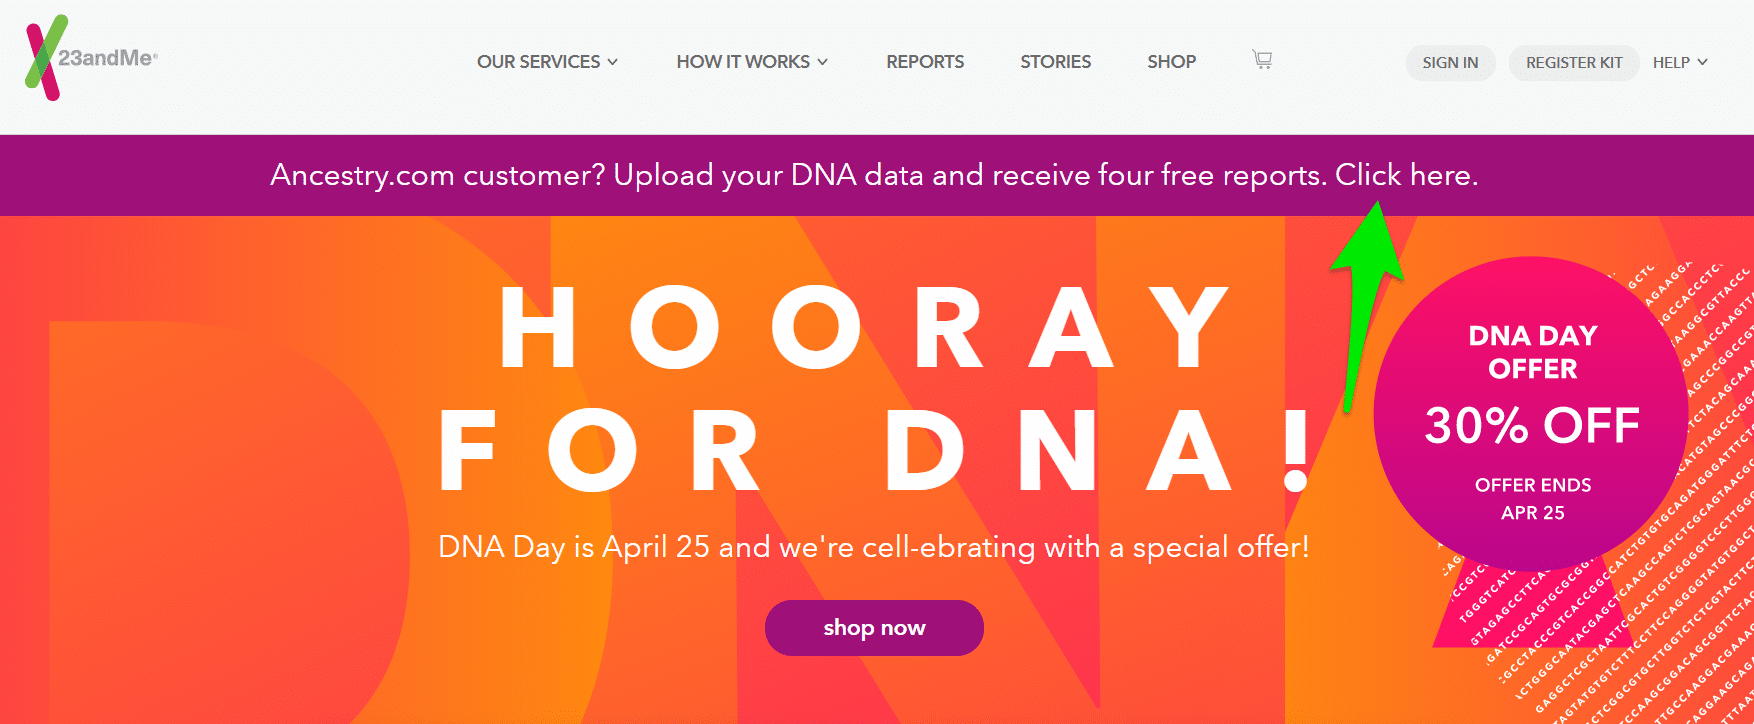 23andMe Free Upload Offer Home Page